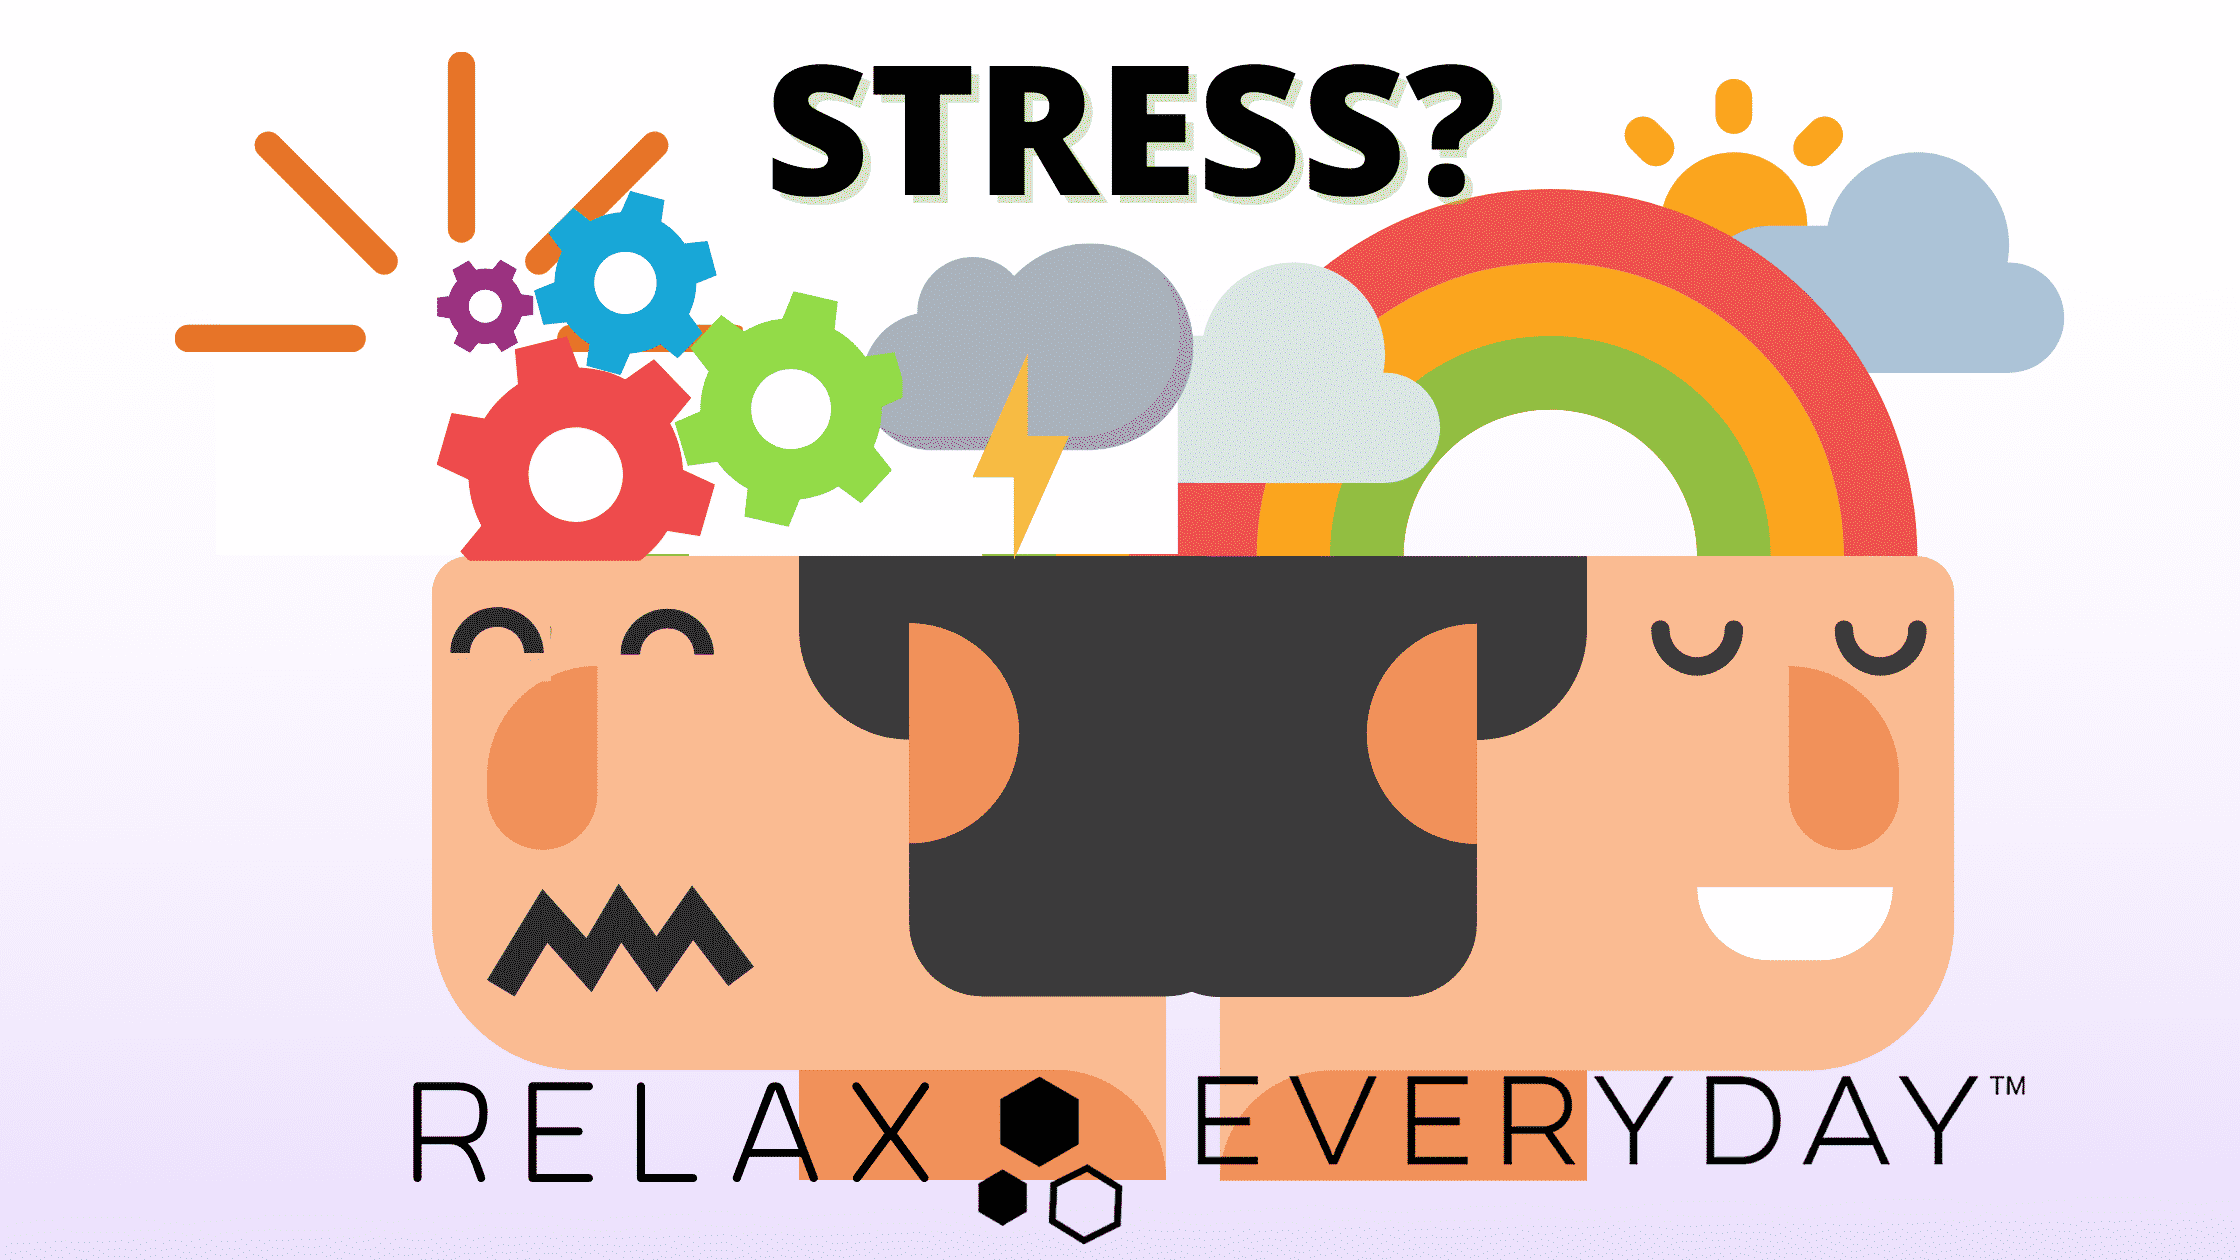 RELAXATION TIPS TO REDUCE STRESS Header